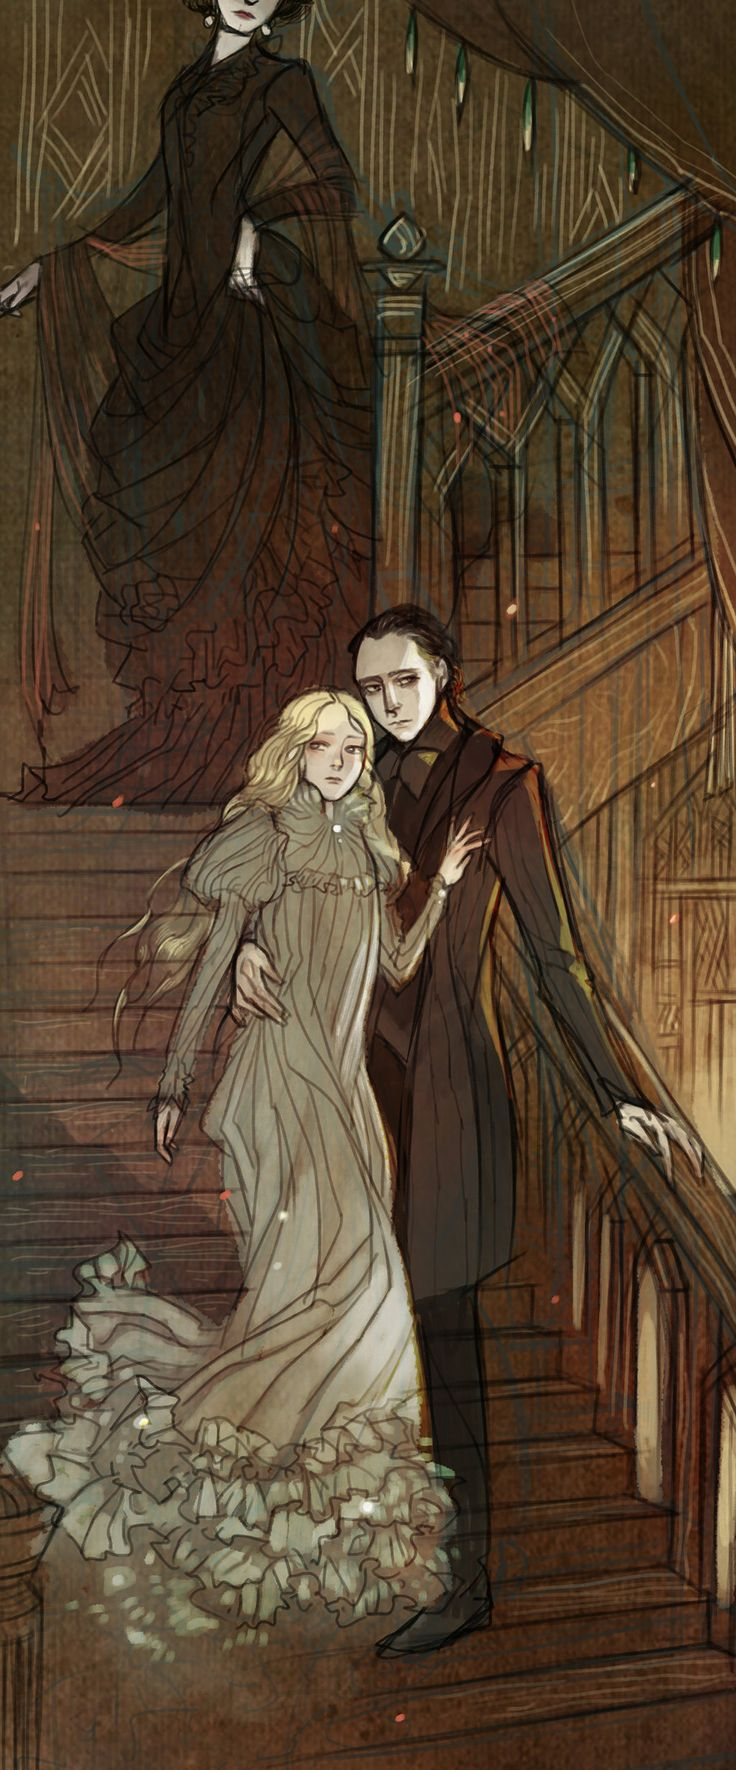 crimson peak by huandual on DeviantArt